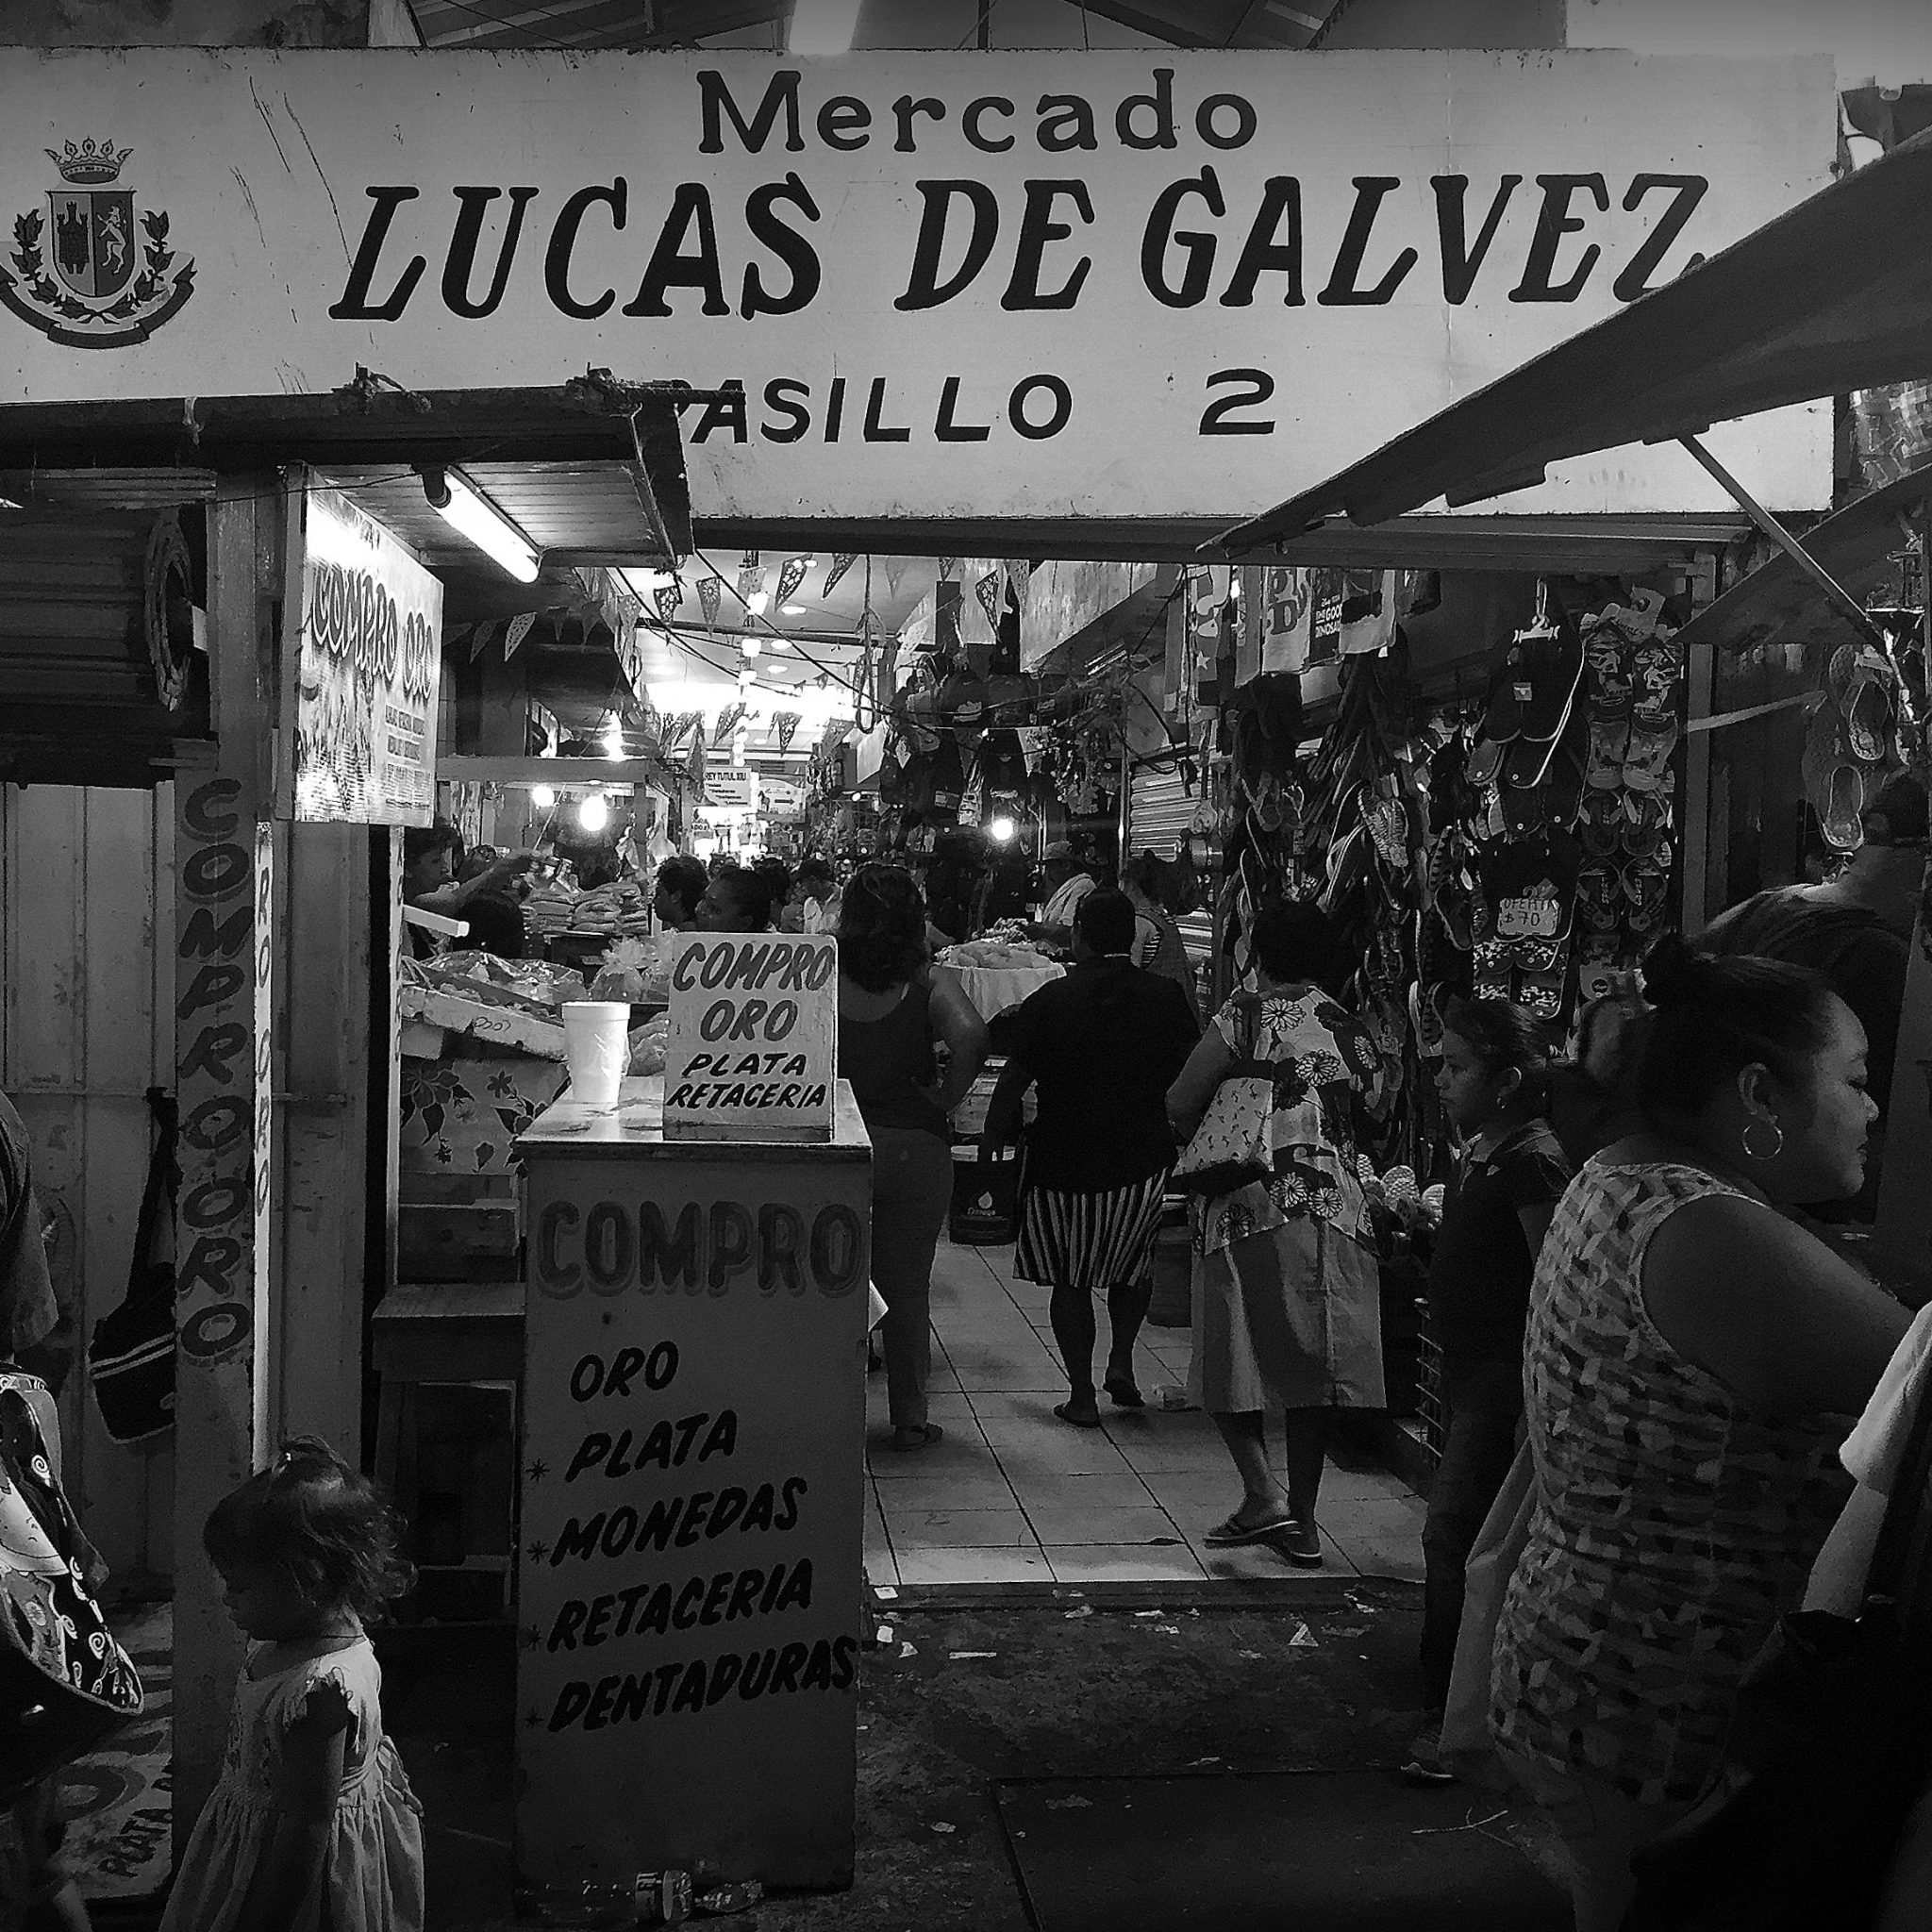 Local markets, like Mercado Lucas De Galvéz, are bursting with local produce. And bustling with local life.